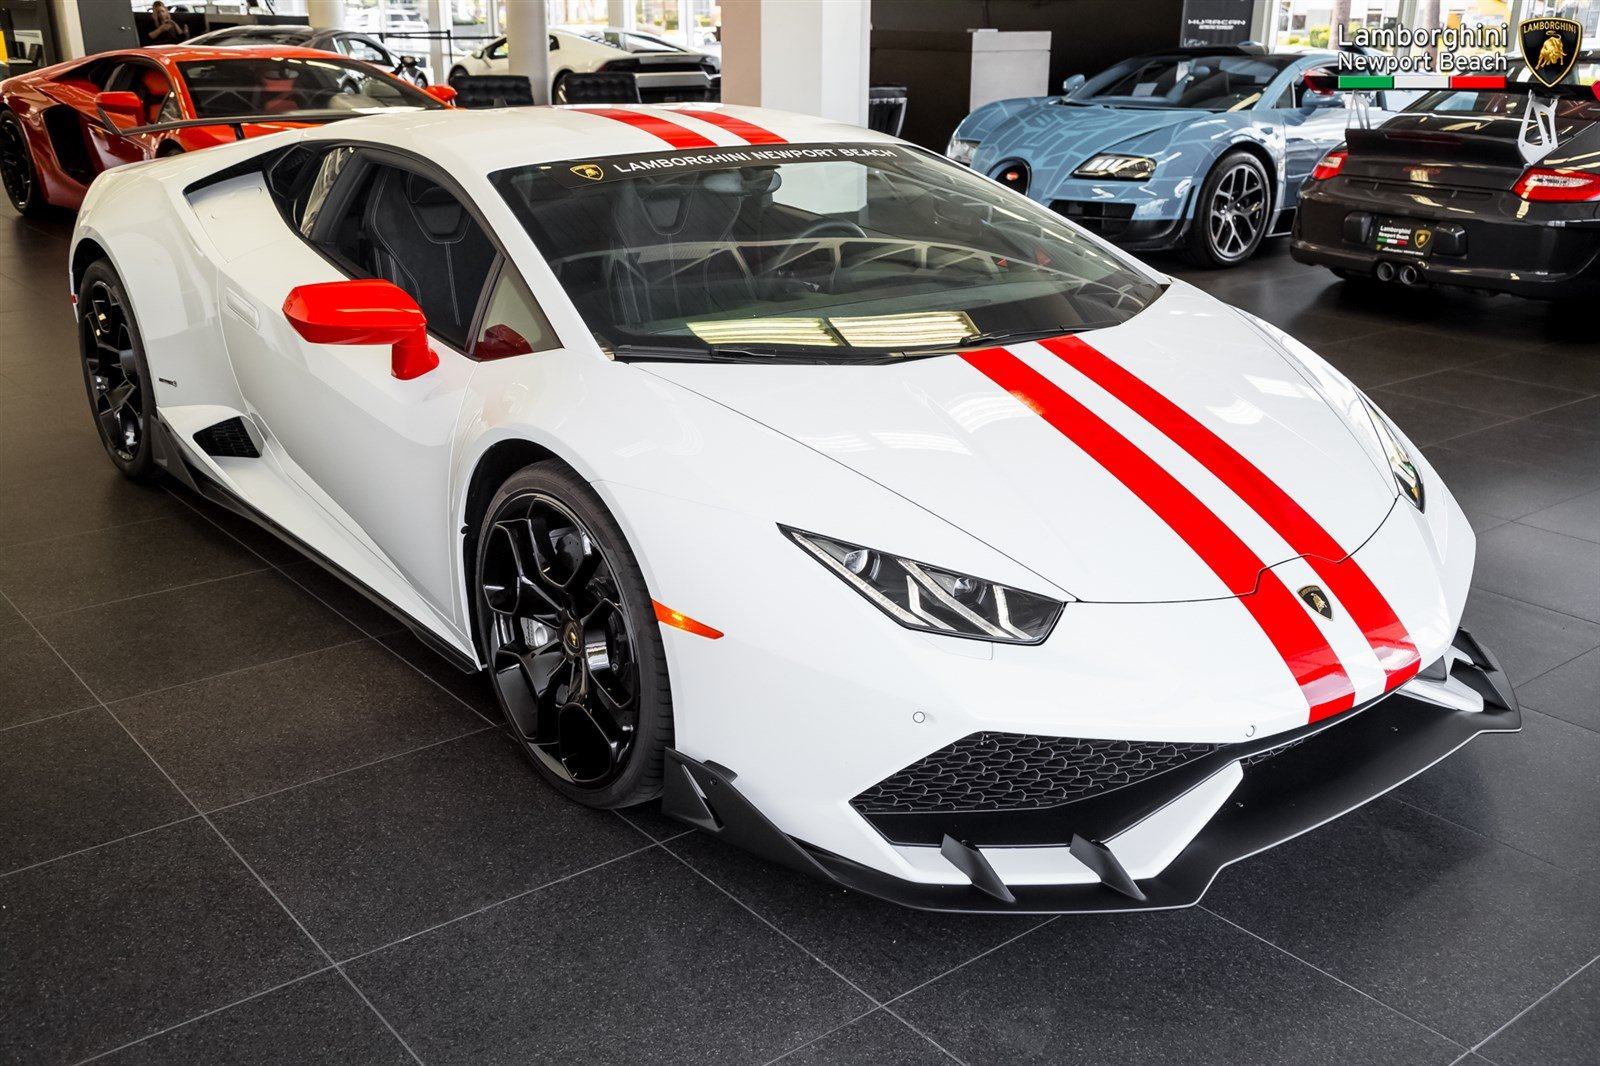 lamborghini 39 s own aero package for the huracan looks fantastic in south africa soon. Black Bedroom Furniture Sets. Home Design Ideas